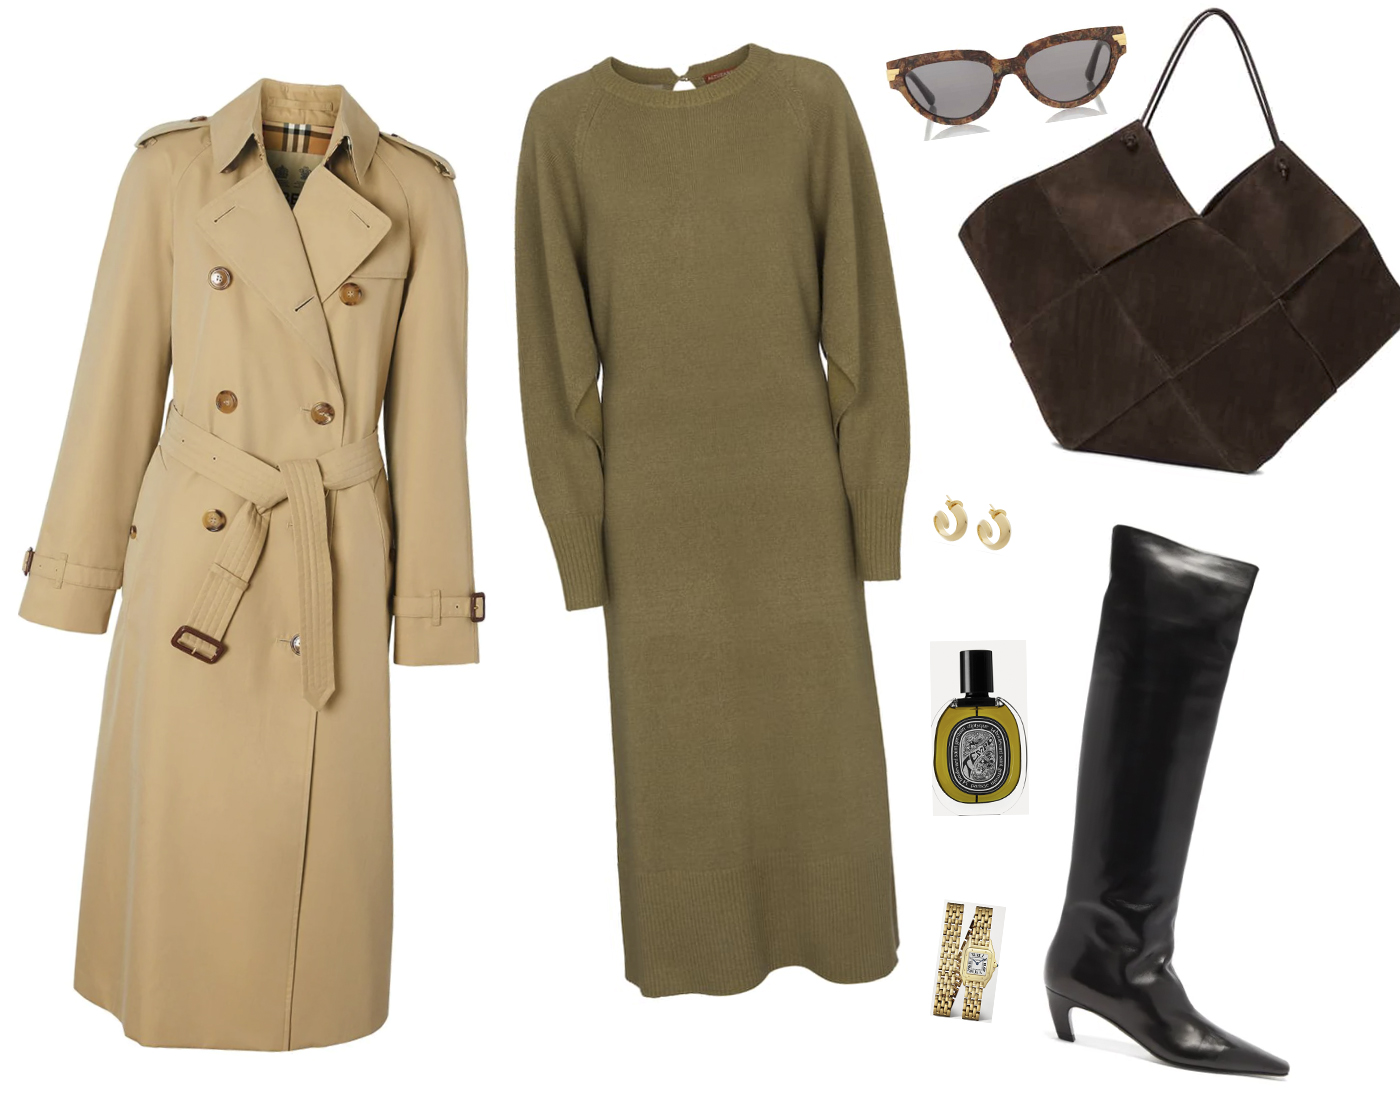 Trini | Burberry trench coat Altuzarra dress